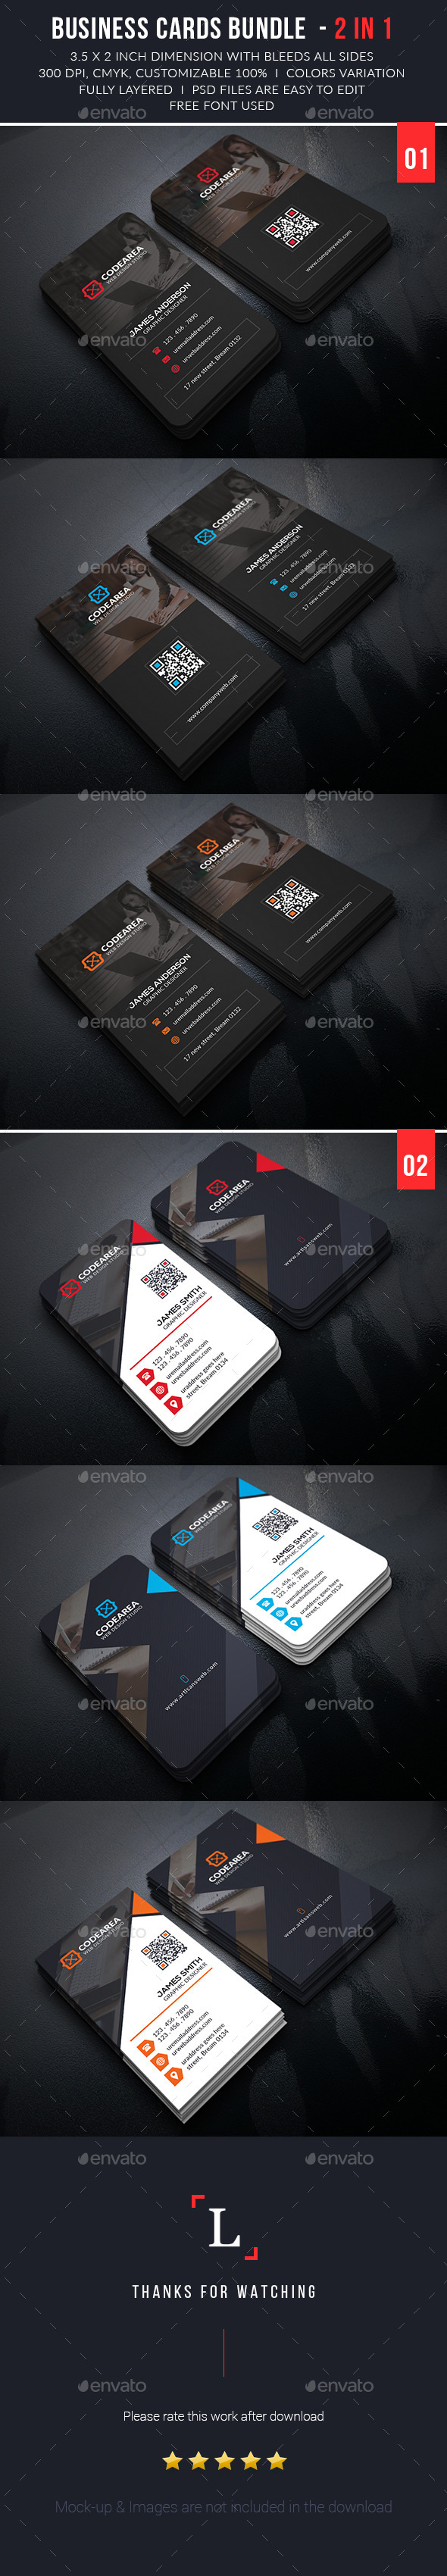 Soft Creative Business Cards Bundle - Business Cards Print Templates